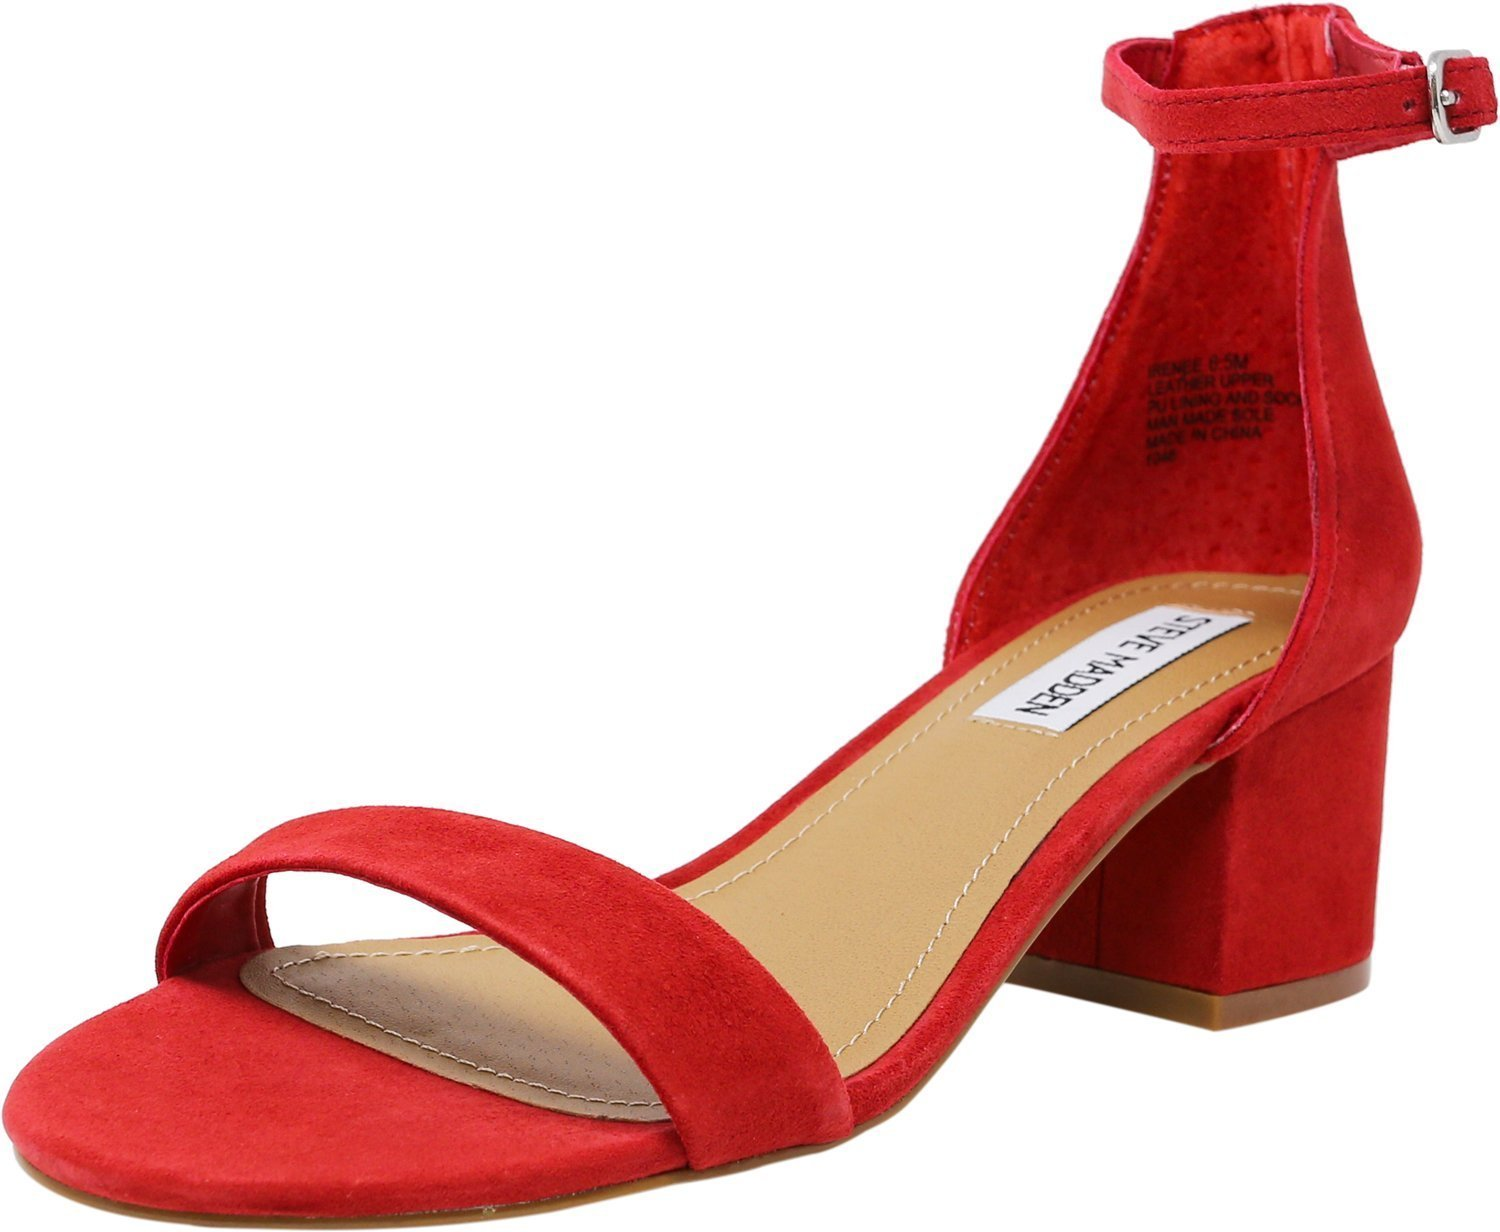 Steve Madden Women's Irenee Suede Red Ankle-High Pump - 9.5M